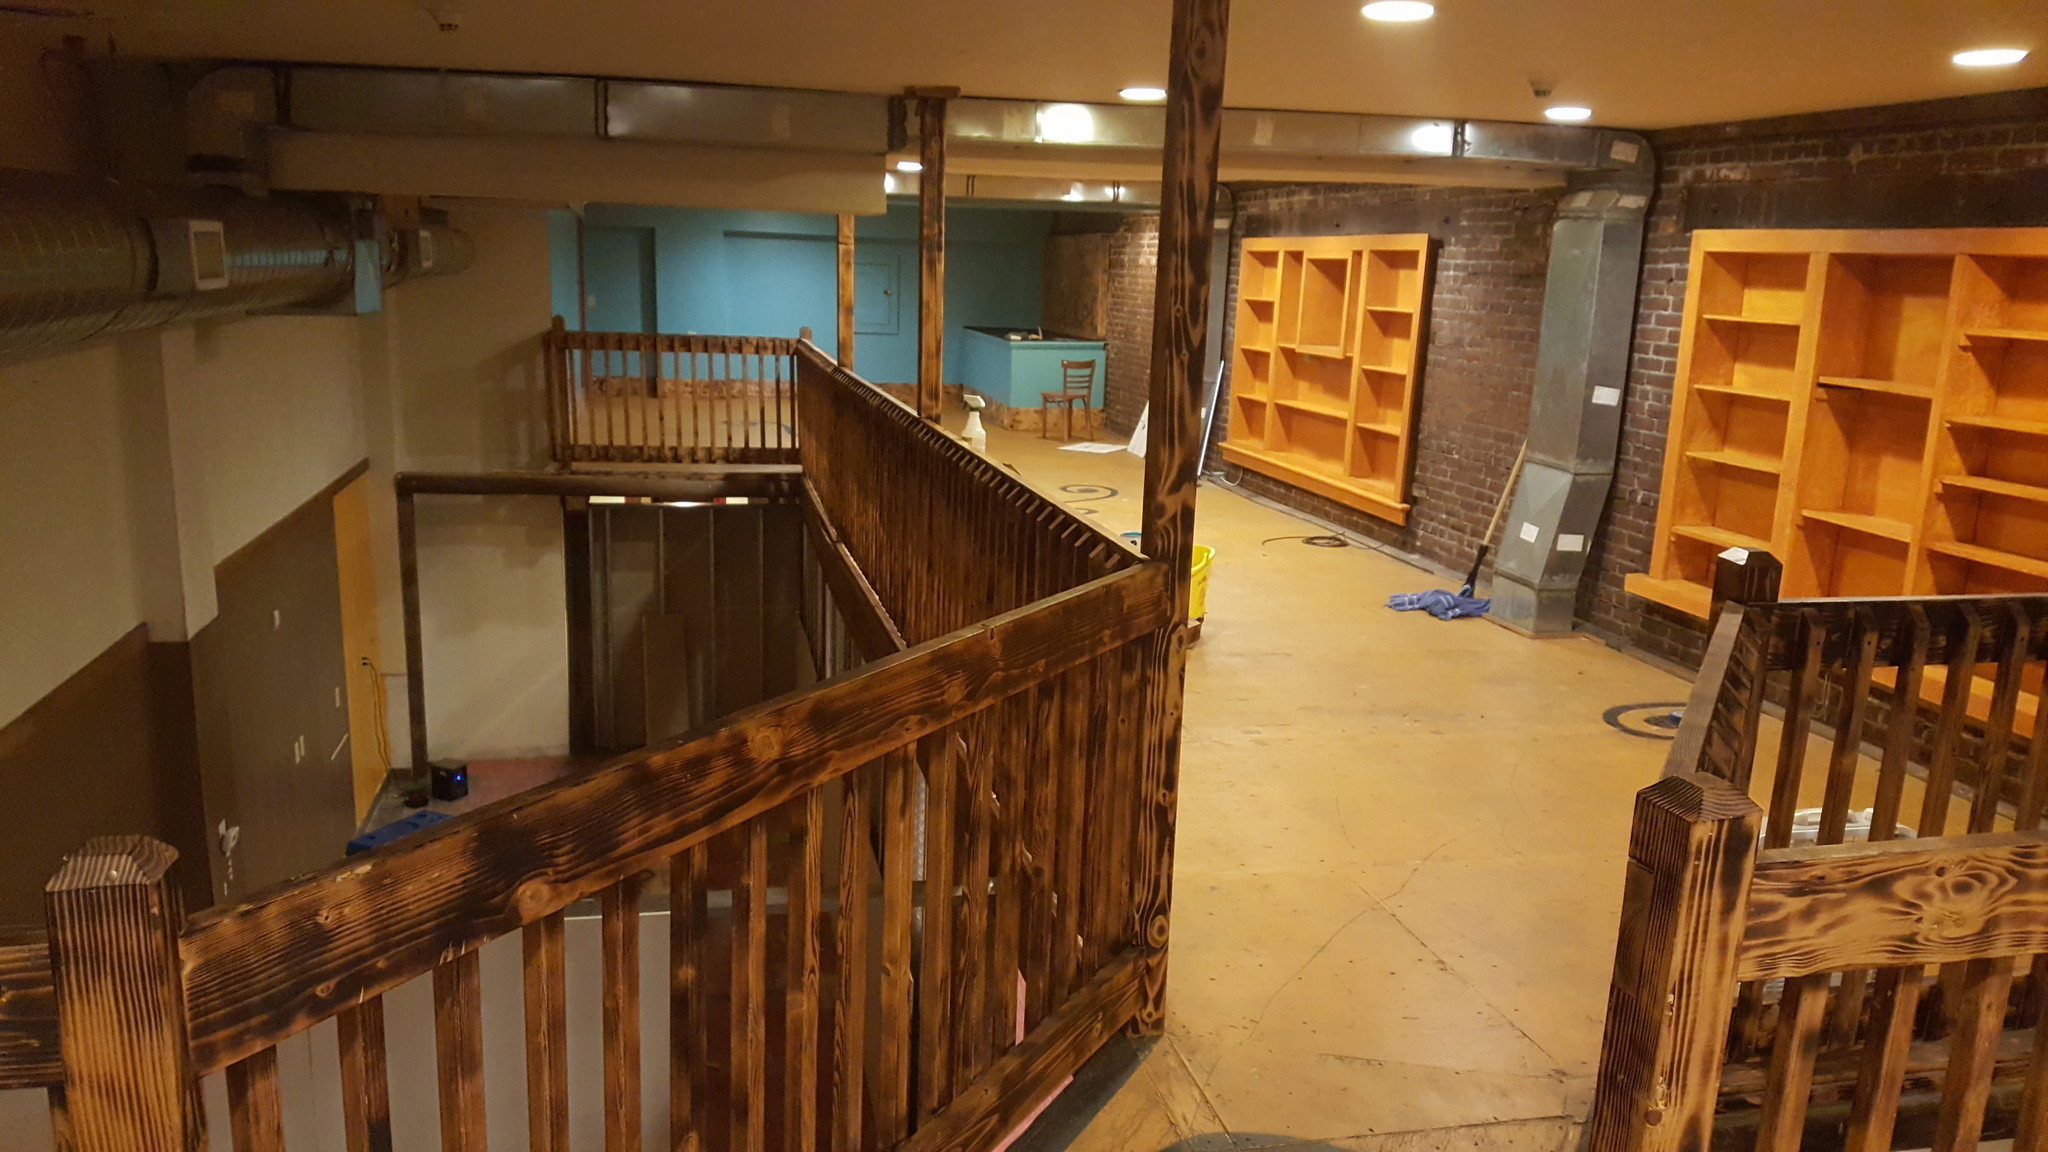 Hot Plate Soul Kitchen coming to former Shankara space in south ...